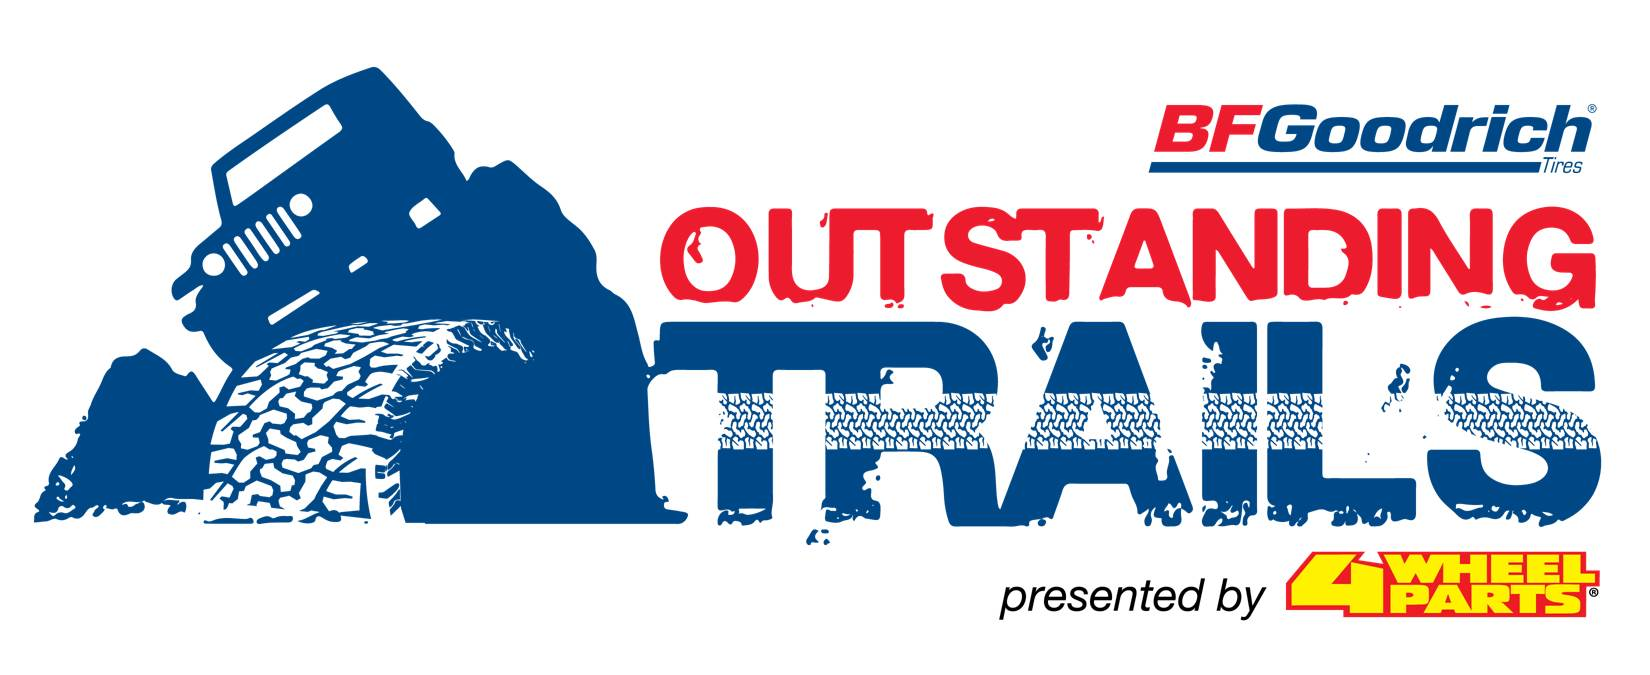 Oustanding_Trails_logo